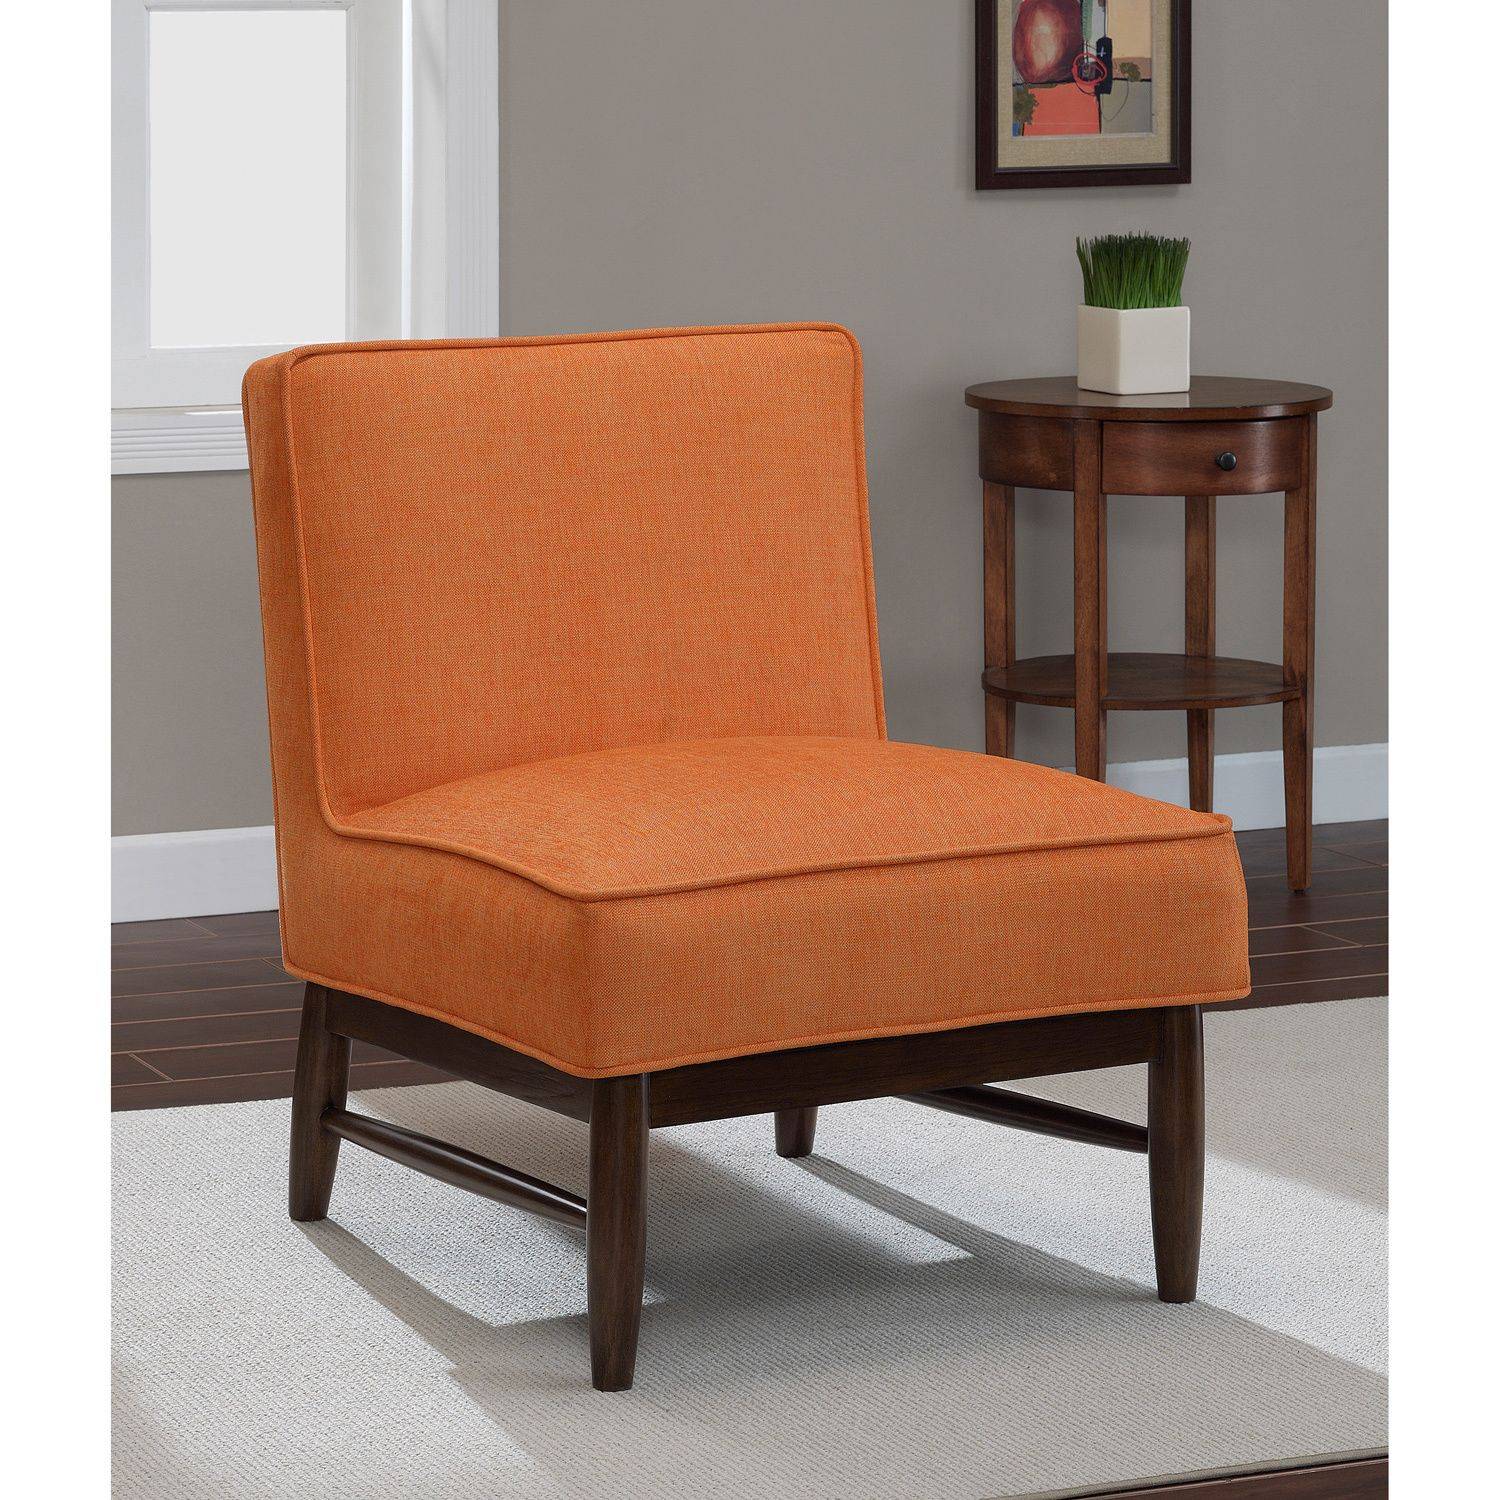 Good Ella Orange Crush Slipper Chair   Overstock™ Shopping   Great Deals On  Living Room Chairs